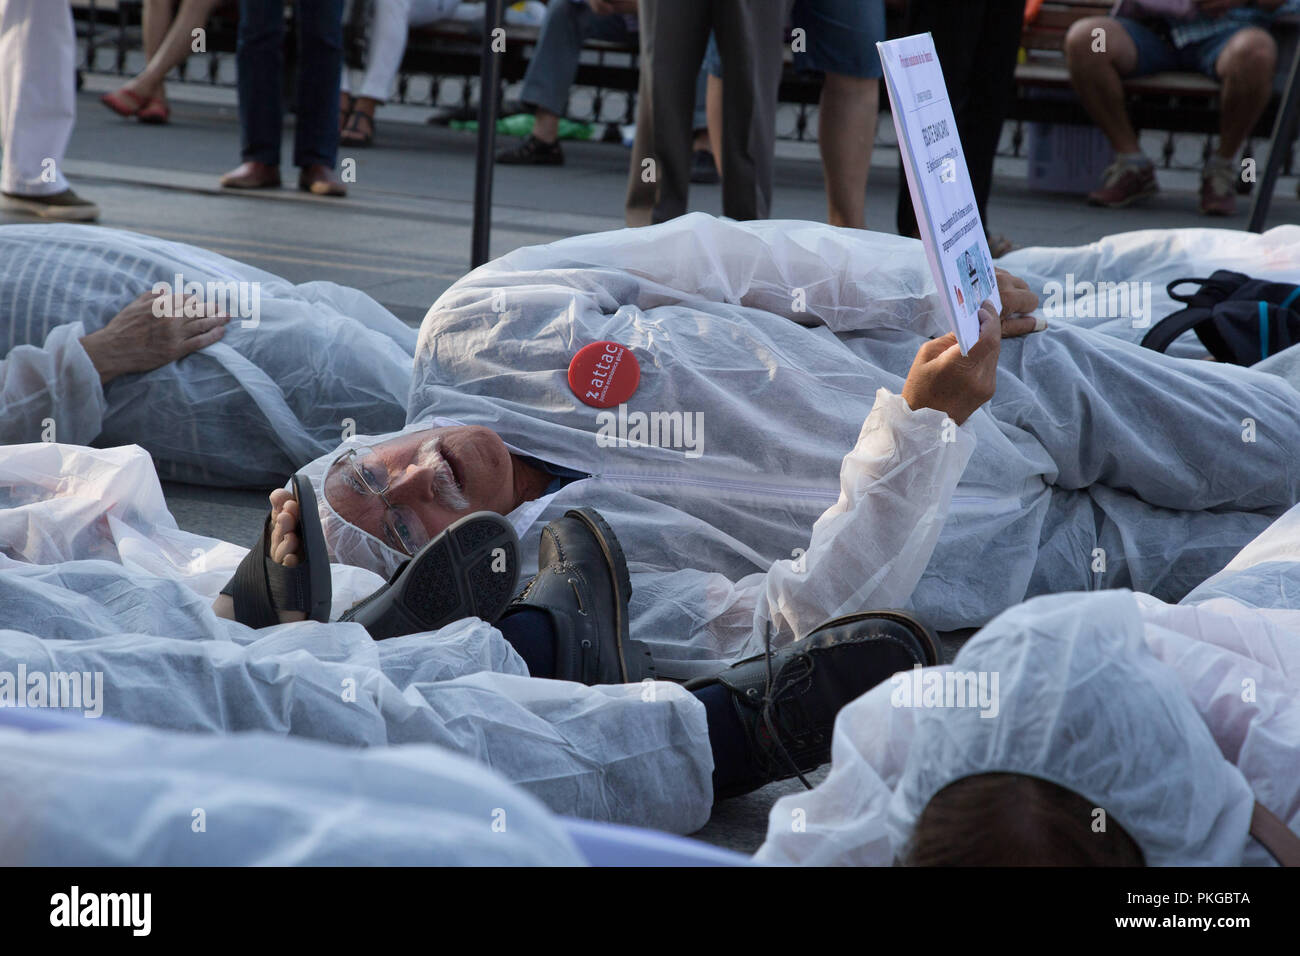 Madrid Spain 13th Sep 2018 Activists Seen Laying On The Ground